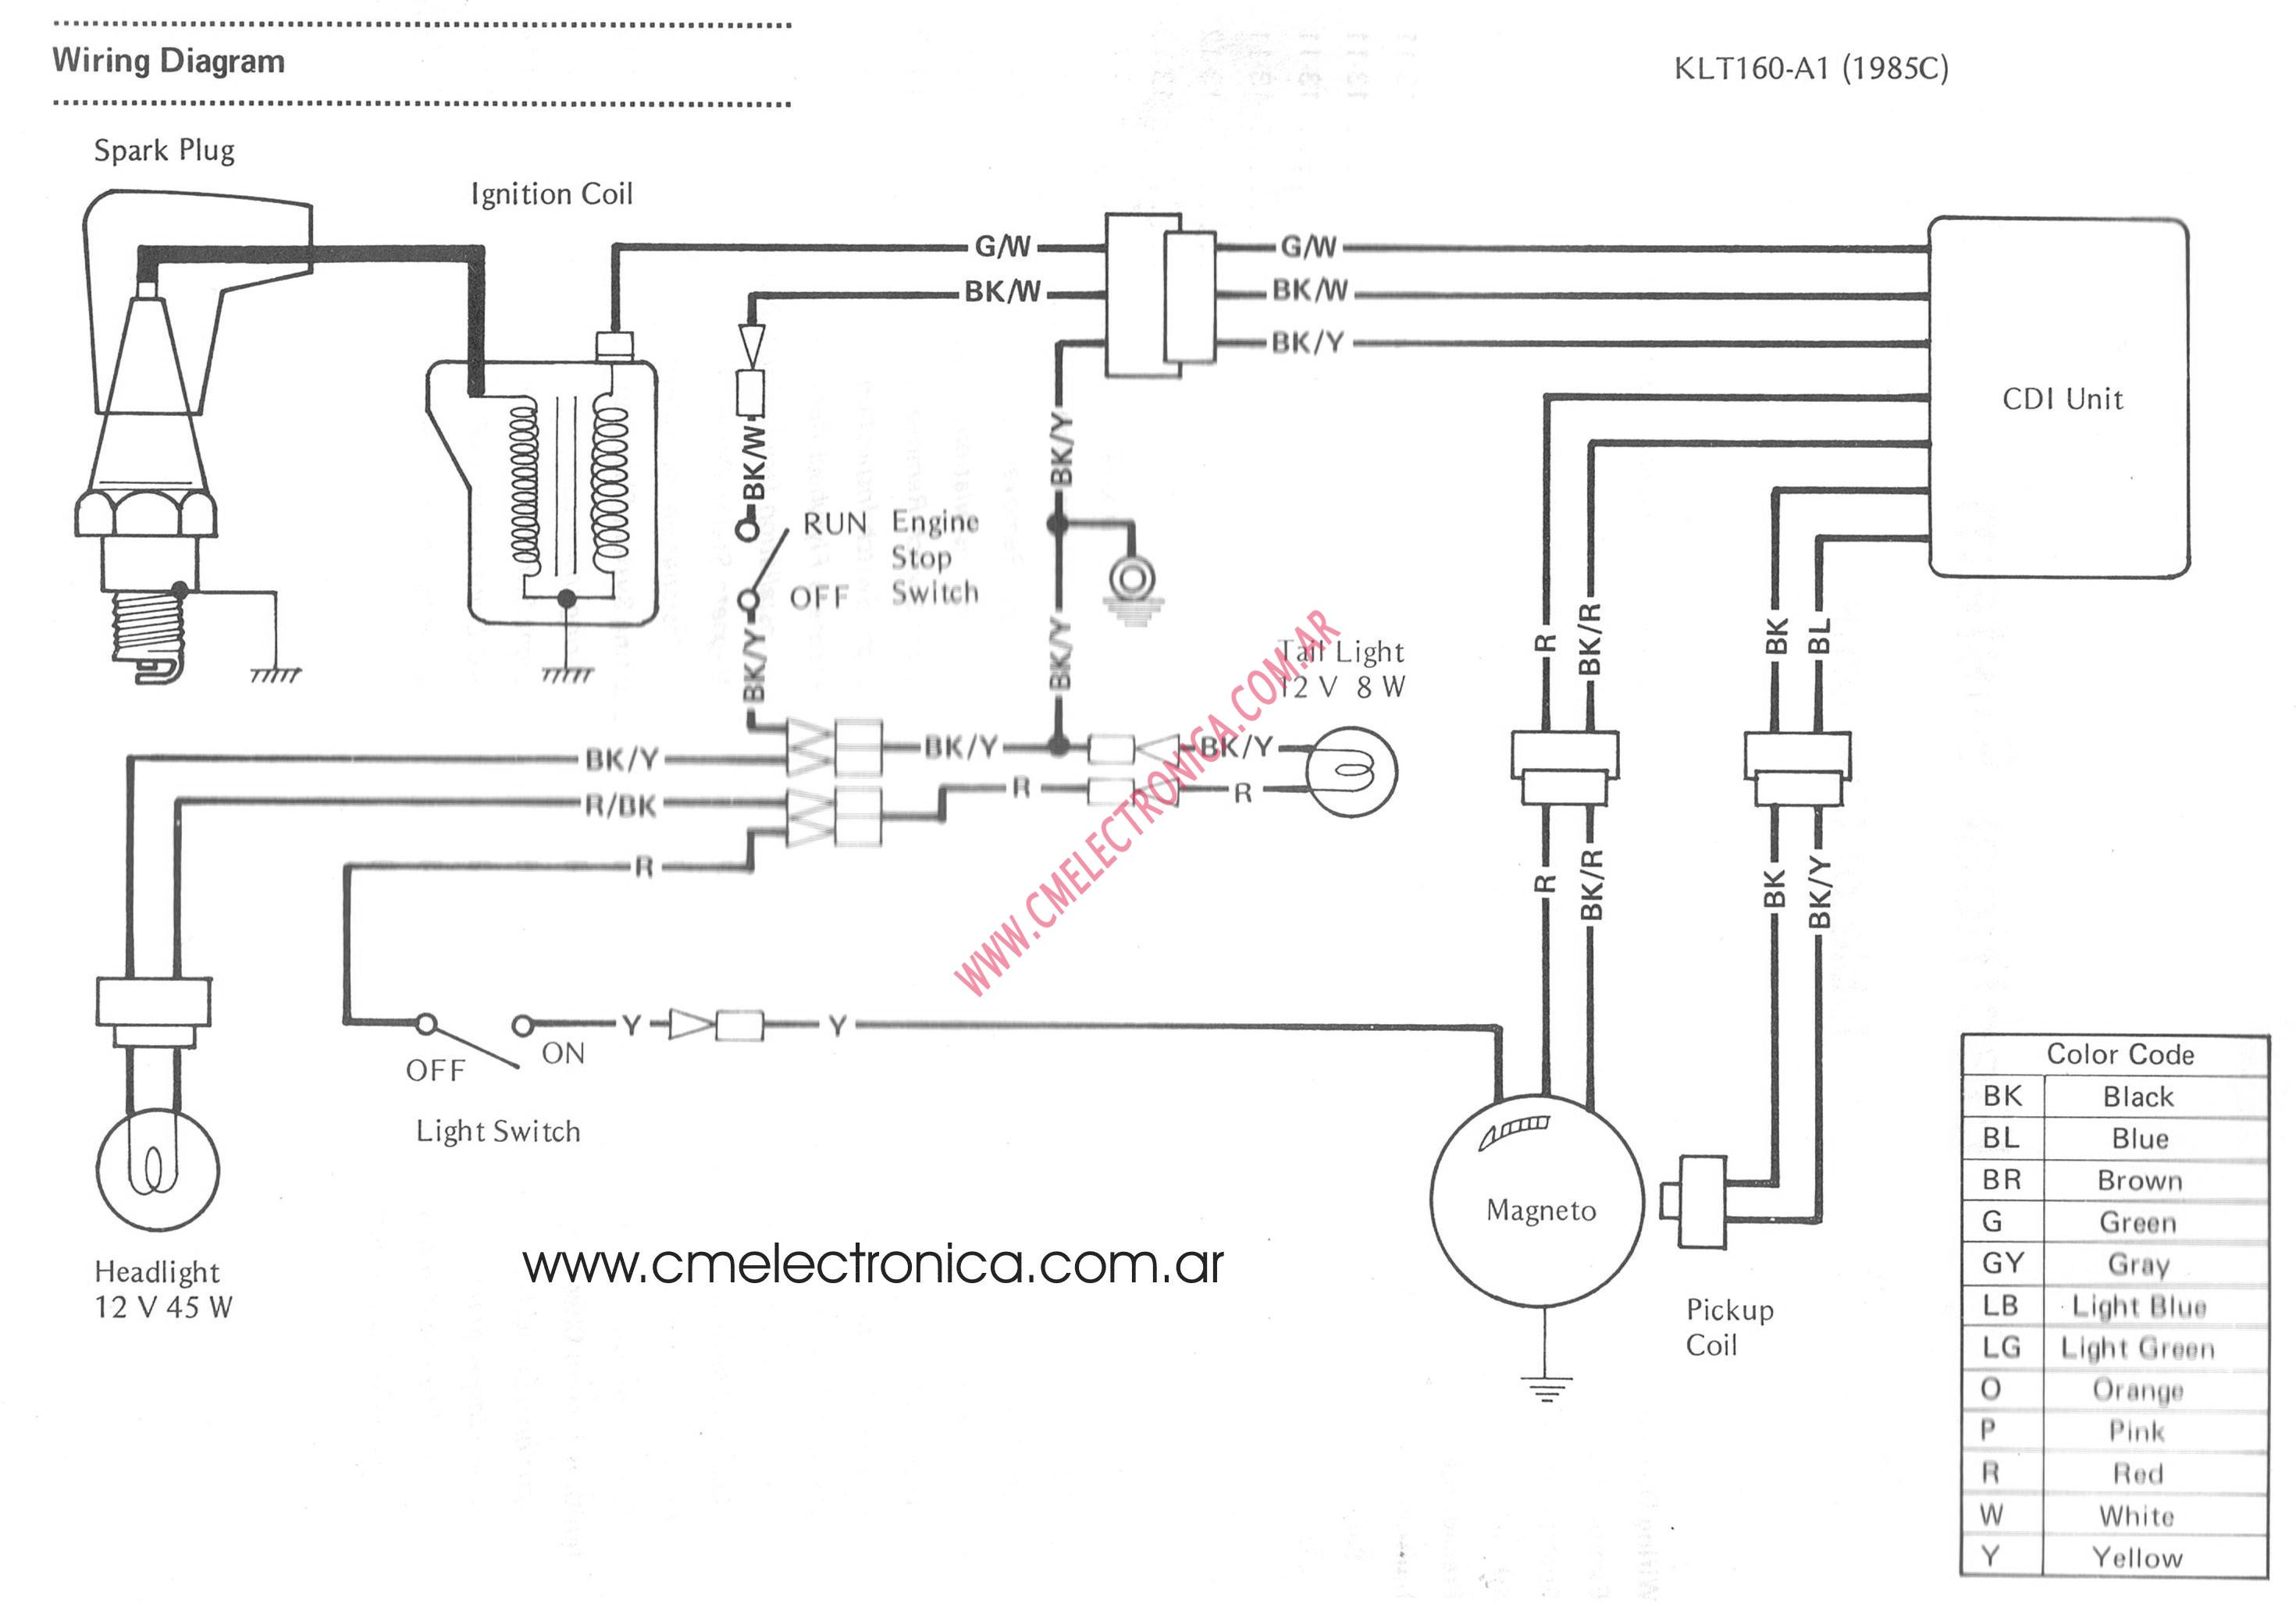 kawasaki klt160a1x85 yamaha raptor 350 wiring diagram on 80 yamaha wolverine wiring Yamaha 50Cc Quad at bayanpartner.co